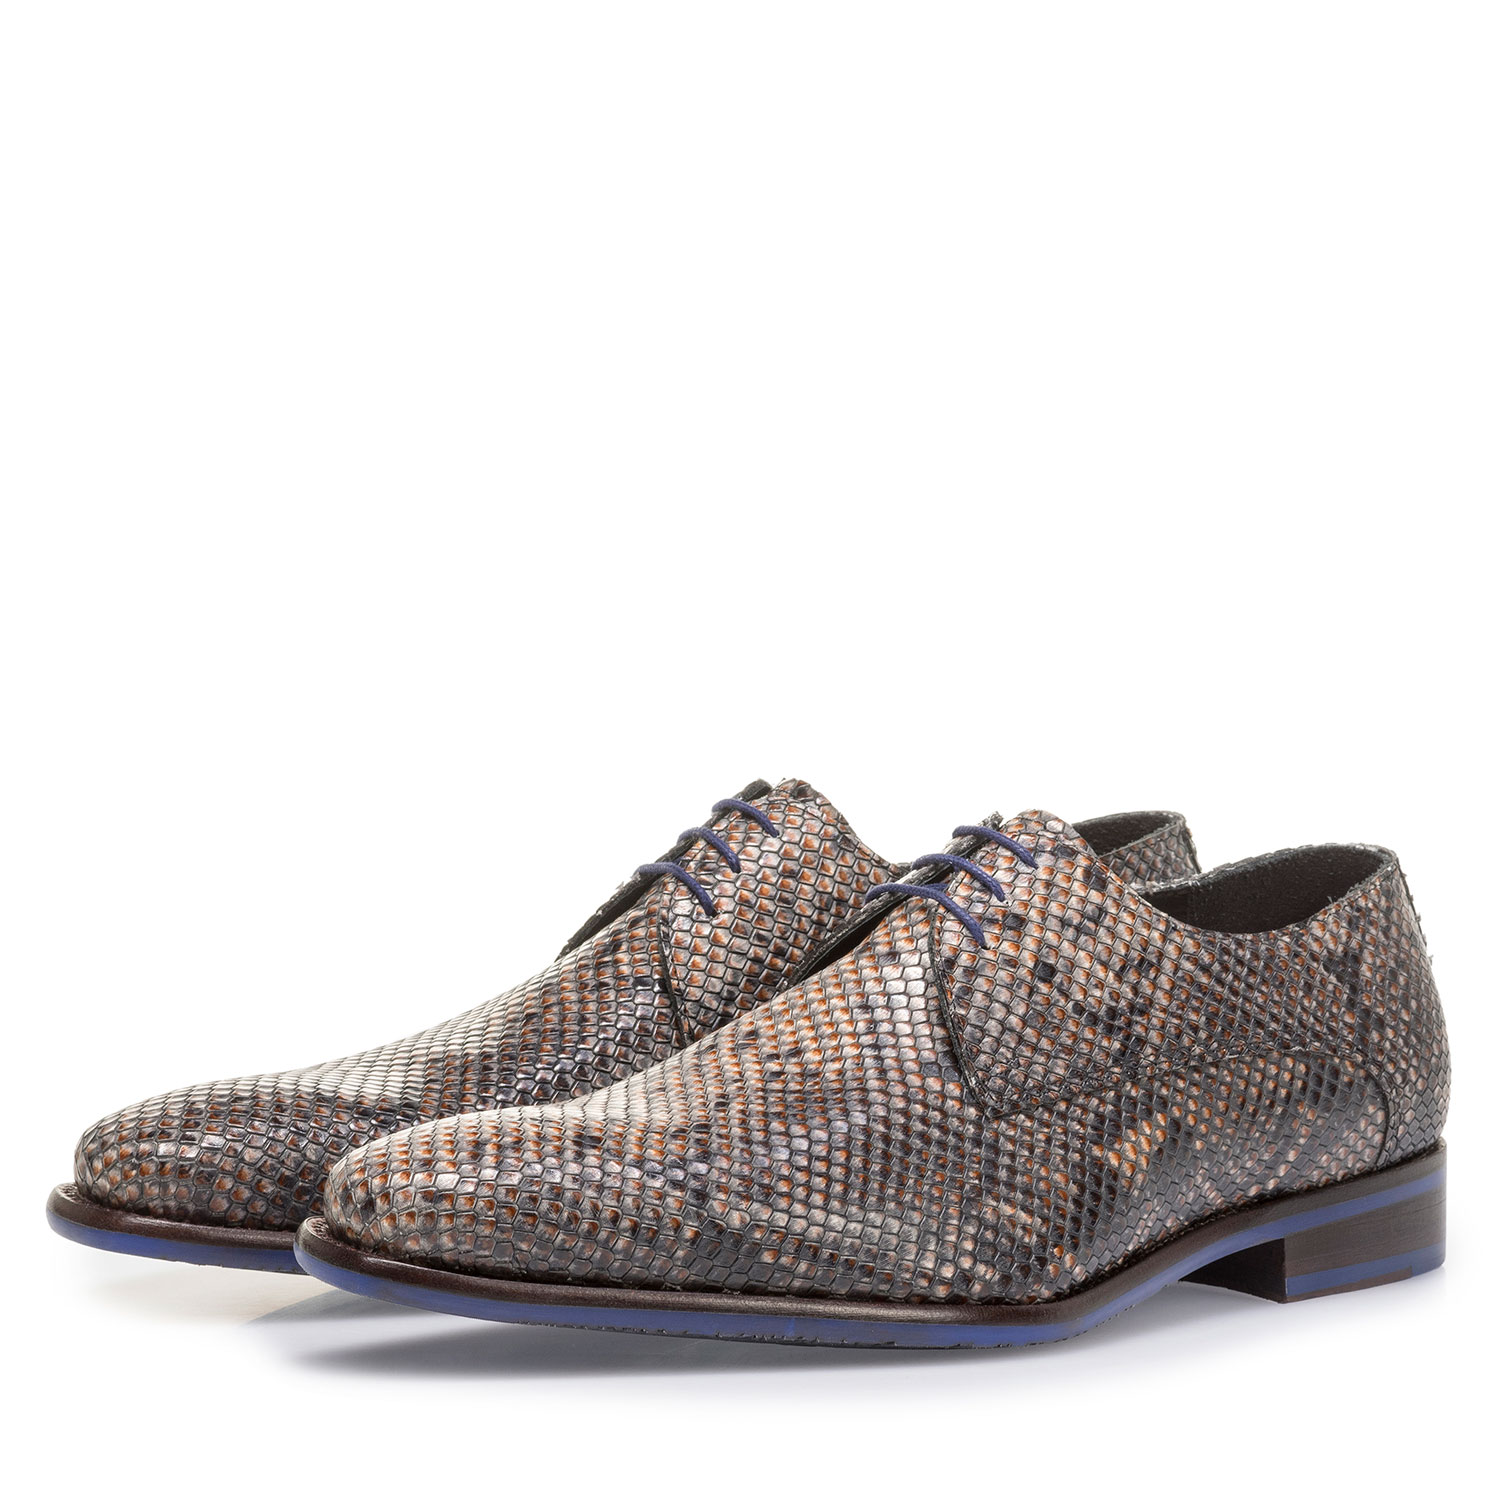 18159/18 - Grey and brown lace shoe with snake print